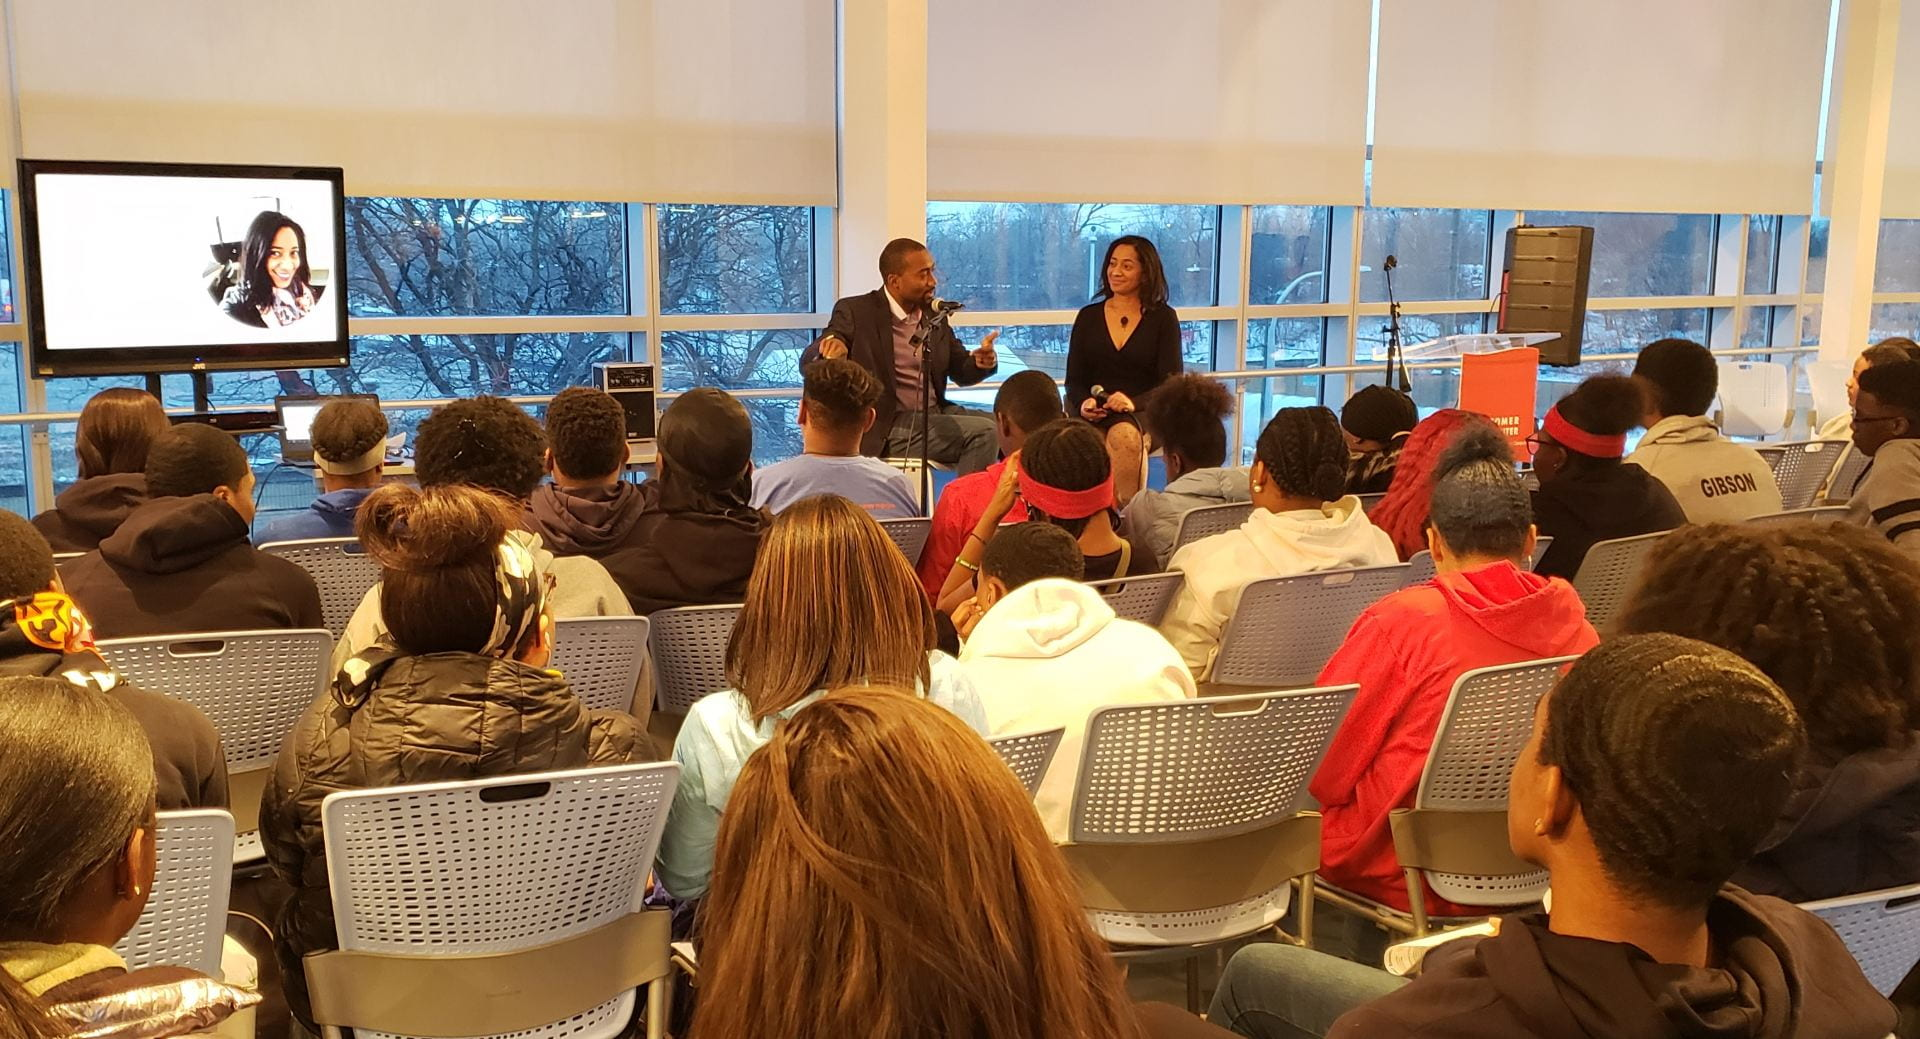 JinJa Birkenbeuel, who serves on the advisory board of the Coleman Entrepreneurship Center, leads a discussion on entrepreneurial thinking with Linal Harris (left), founder and principal coach at Insights 4 Life Coaching, LLC.